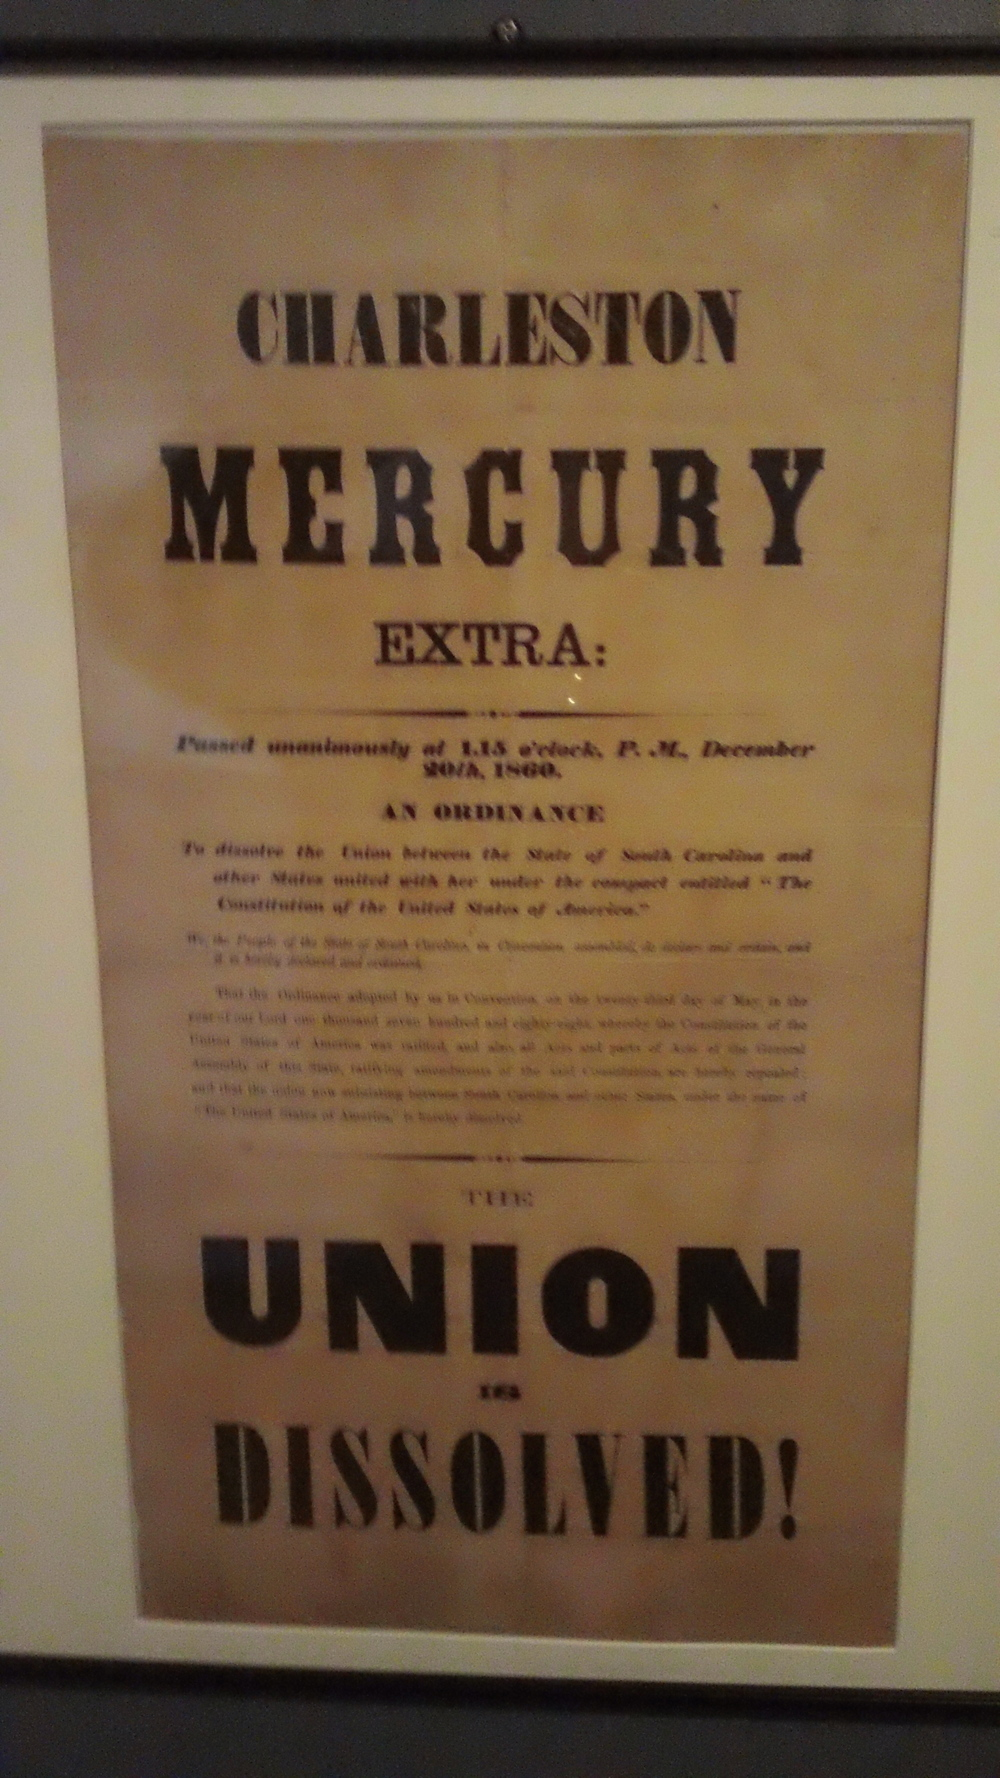 The Museum of the Confederacy has a famous broadside from the Charleston Mercury newspaper after the fall of Fort Sumter.